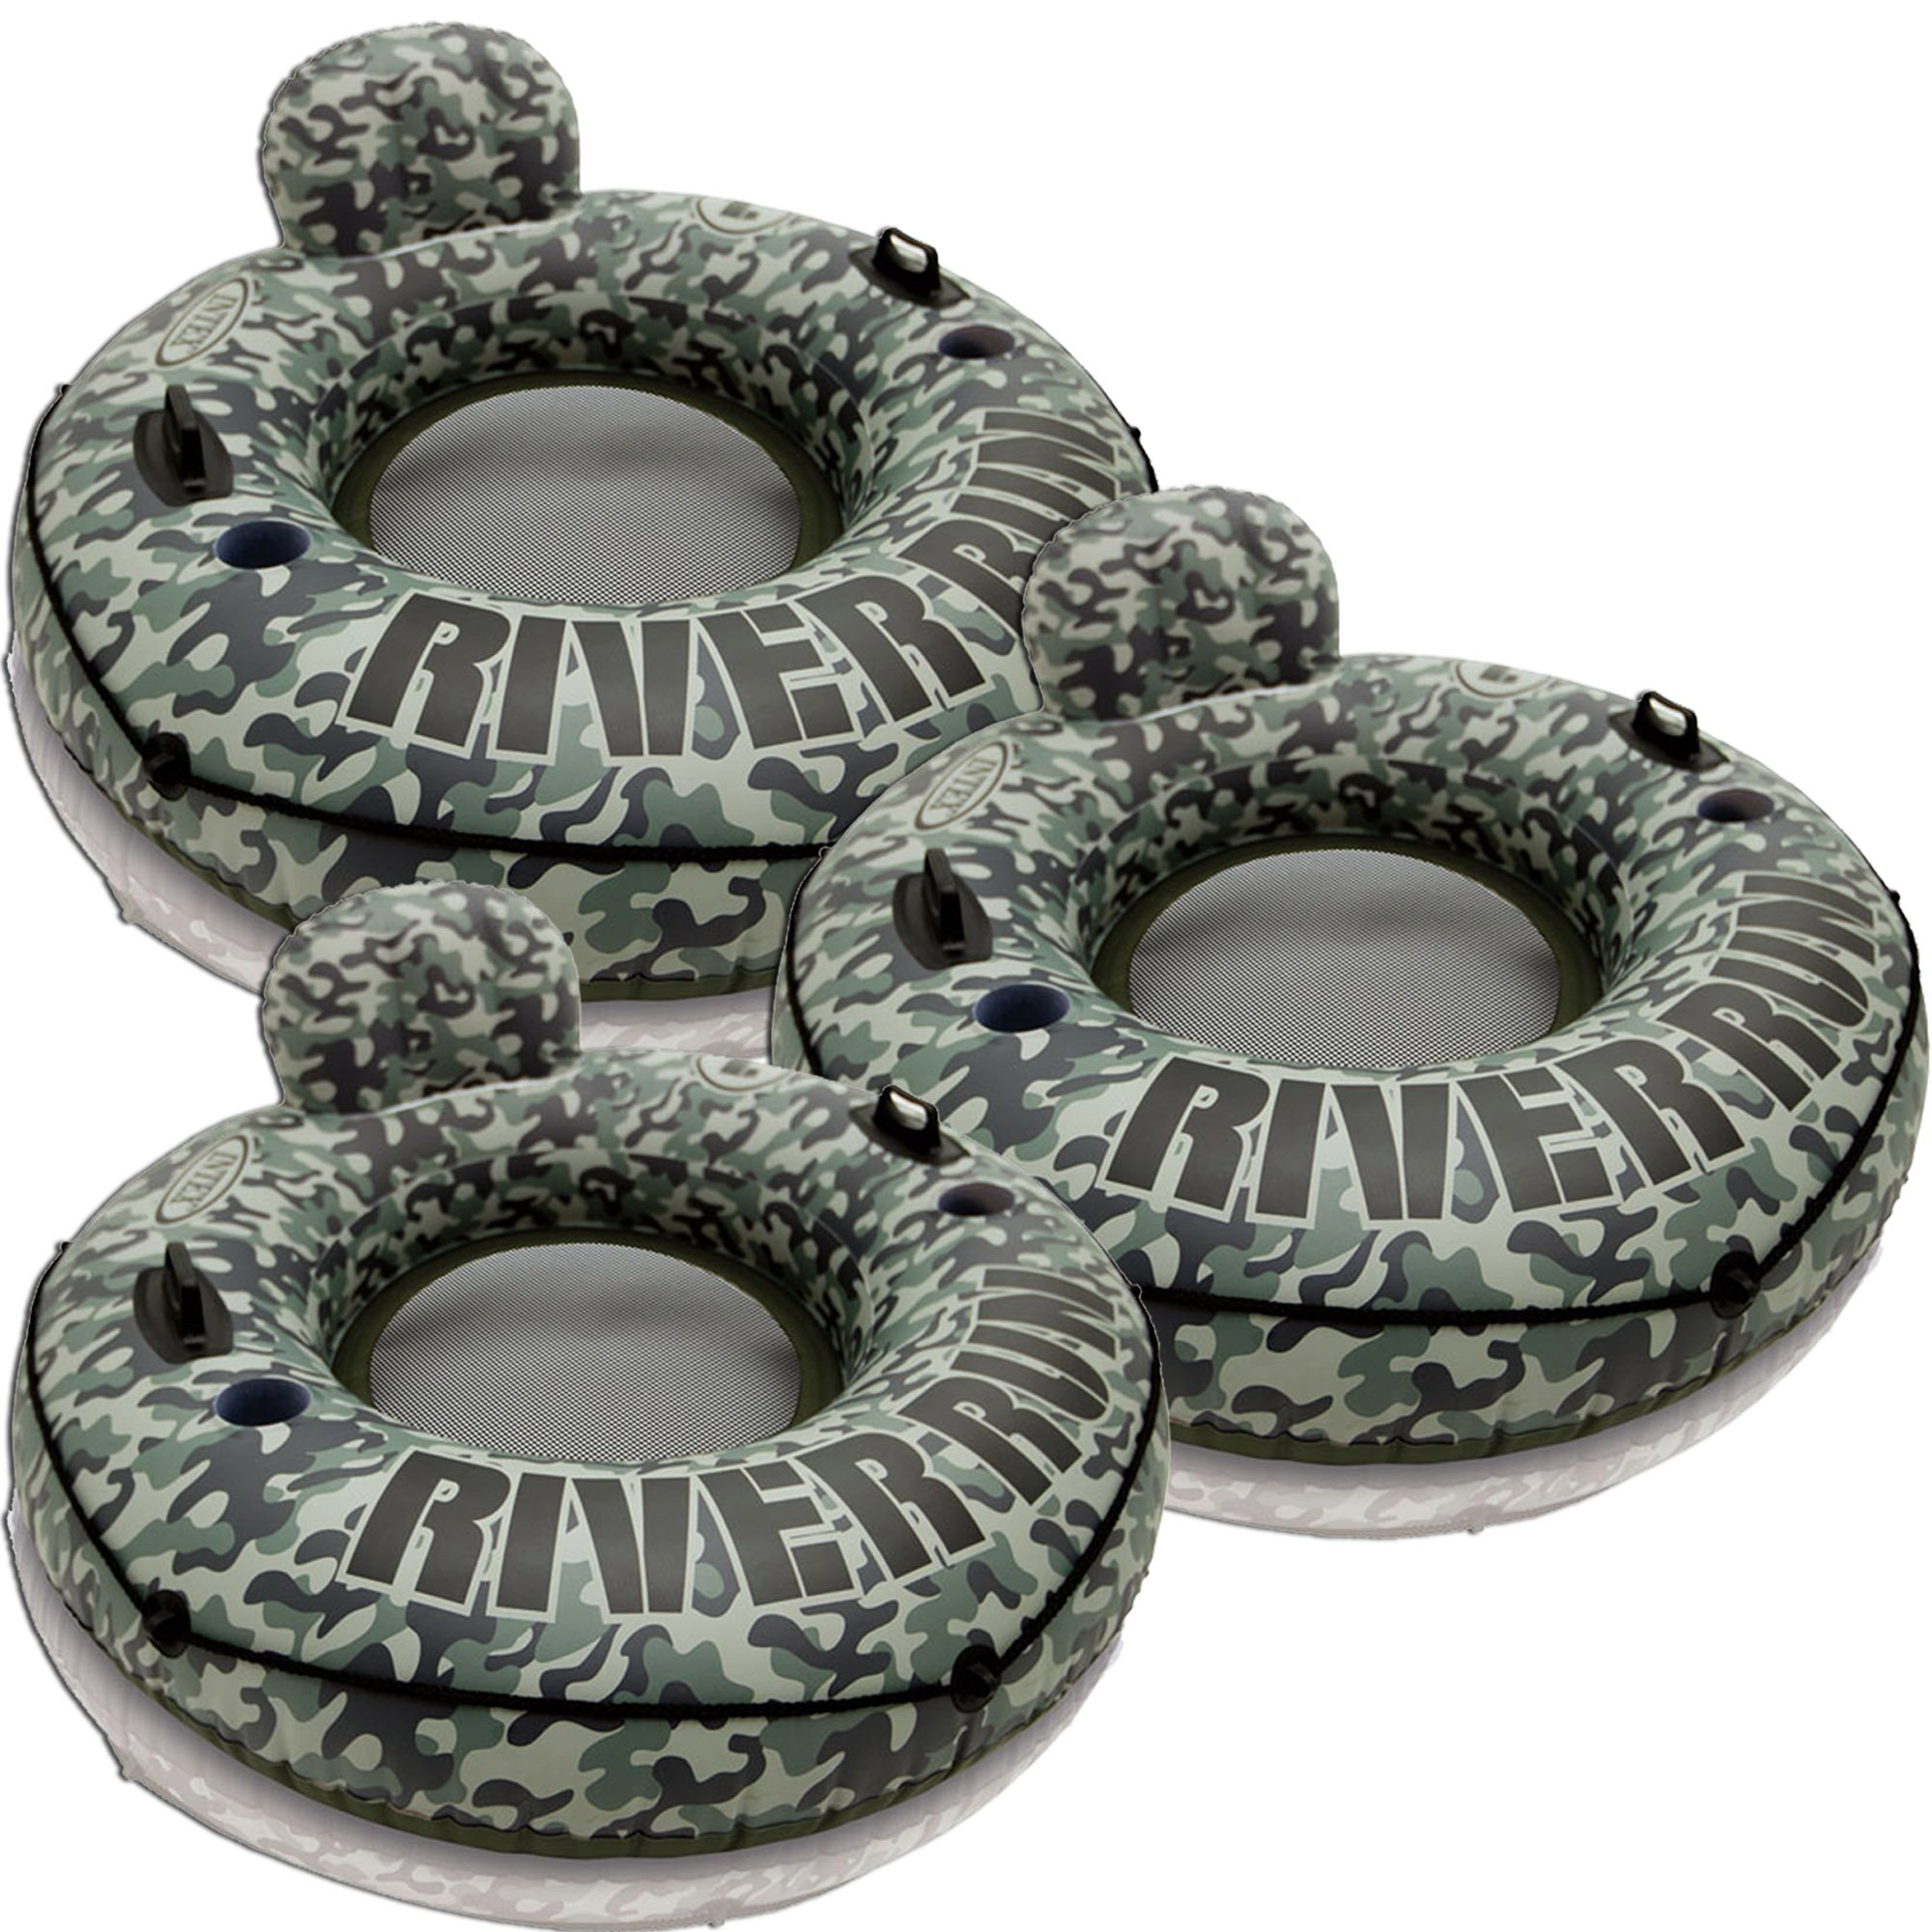 3 Pack Intex River Run 53-Inch Inflatable Tube (Camo) by Intex